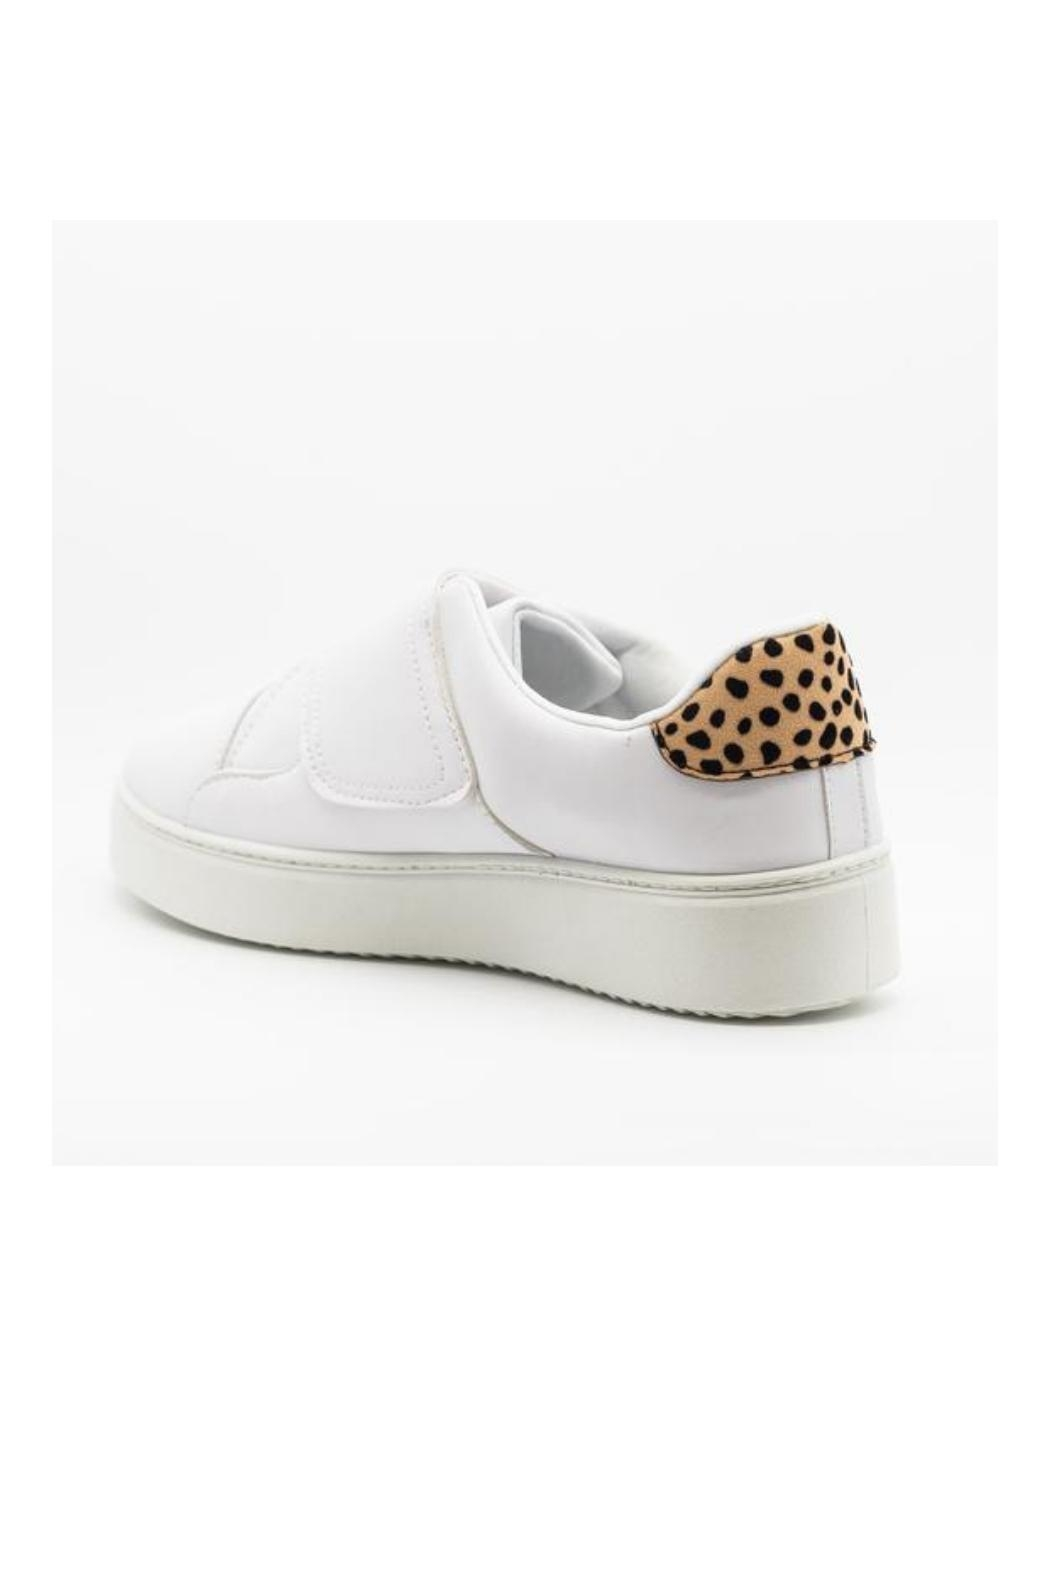 Qupid Moody Sneaker White - Side Cropped Image